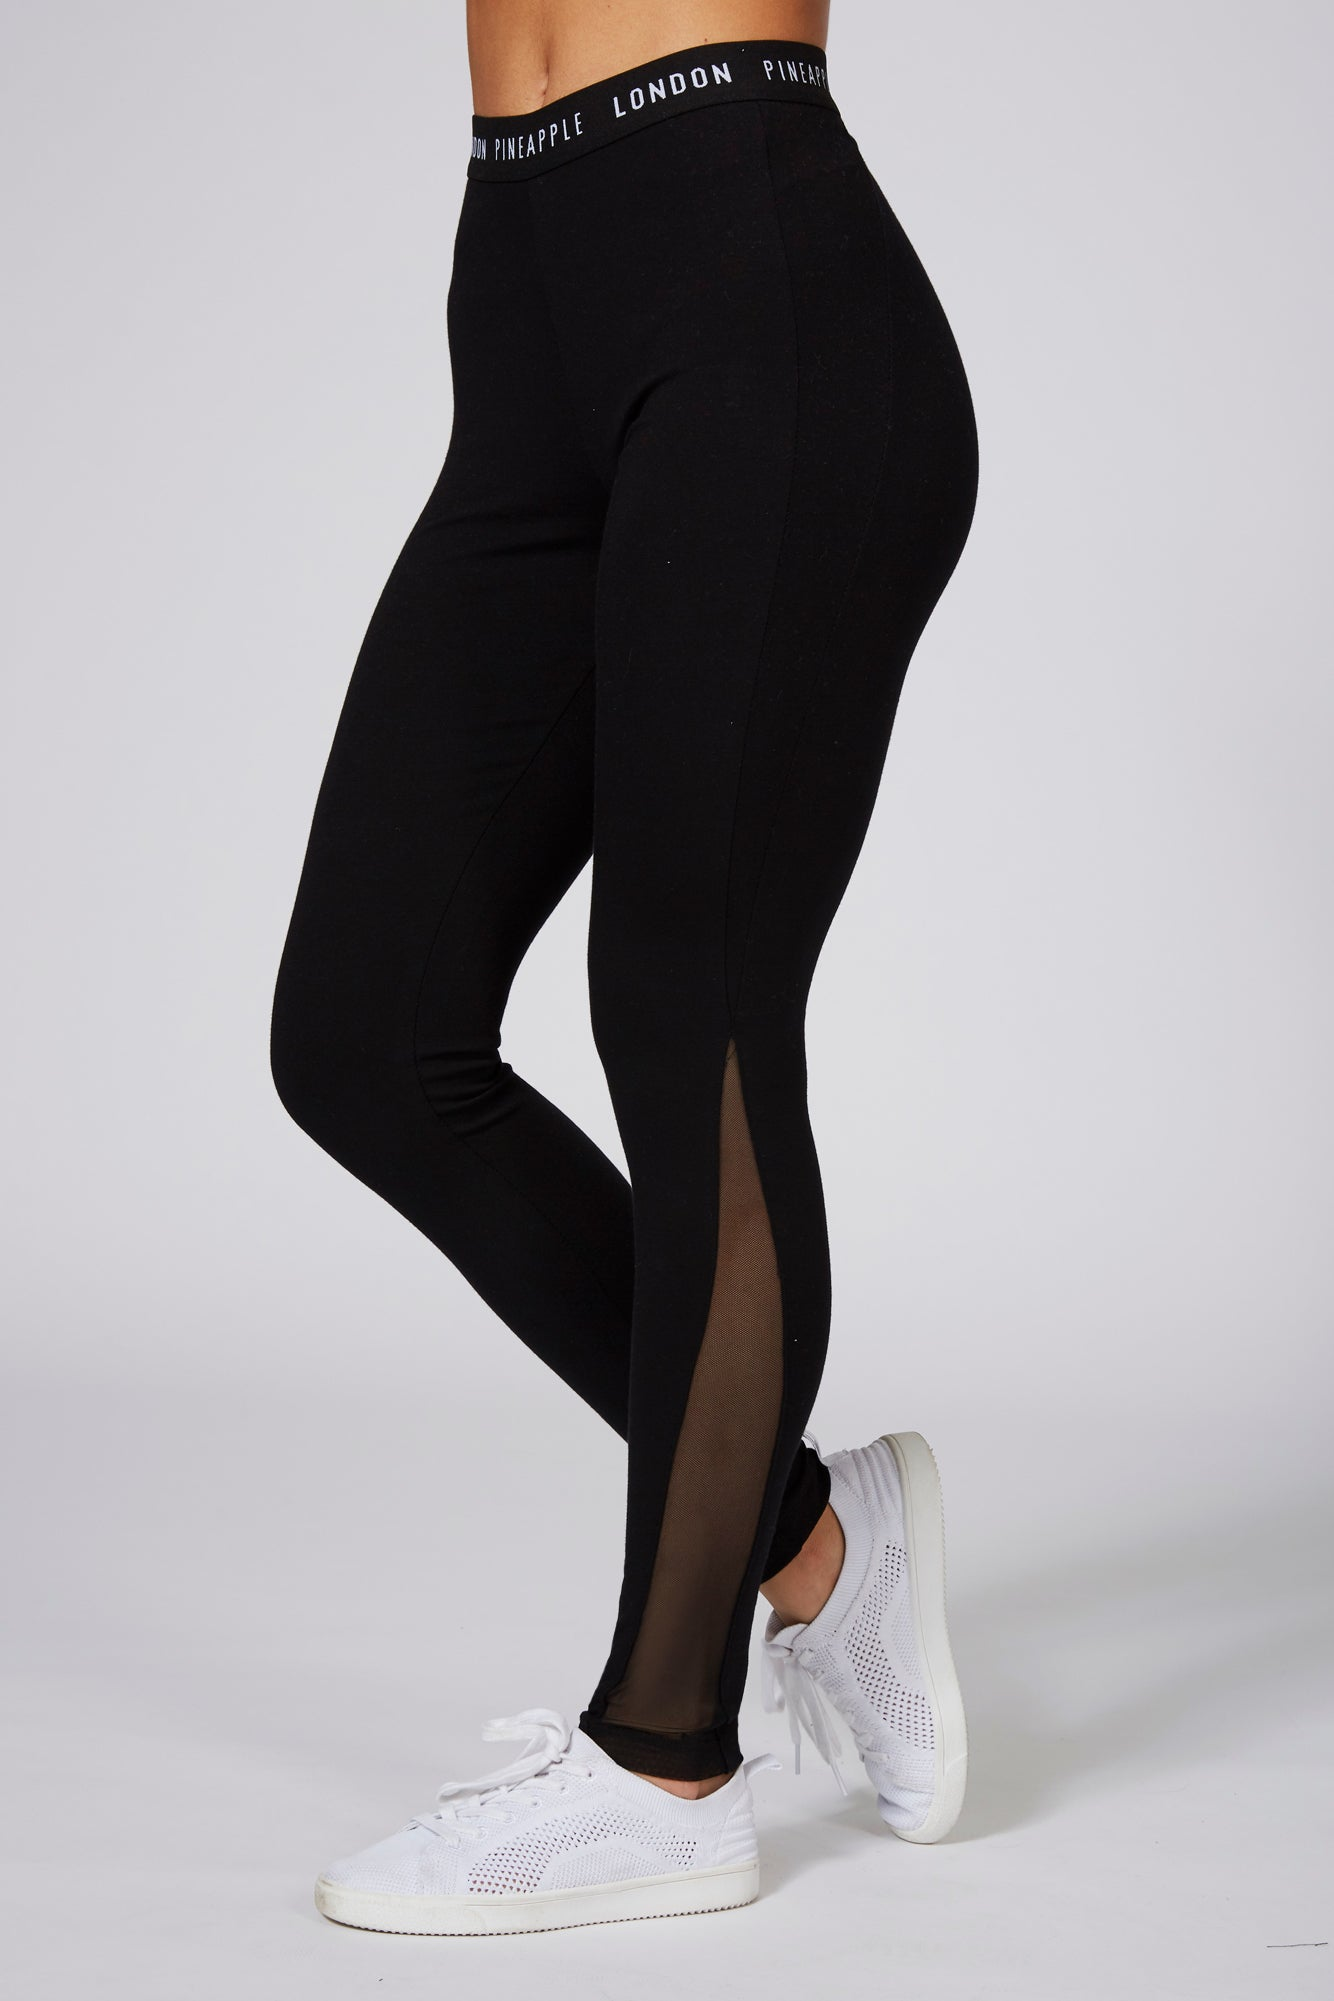 Pineapple Dancewear Women's Black V Mesh Panel Leggings PT17050